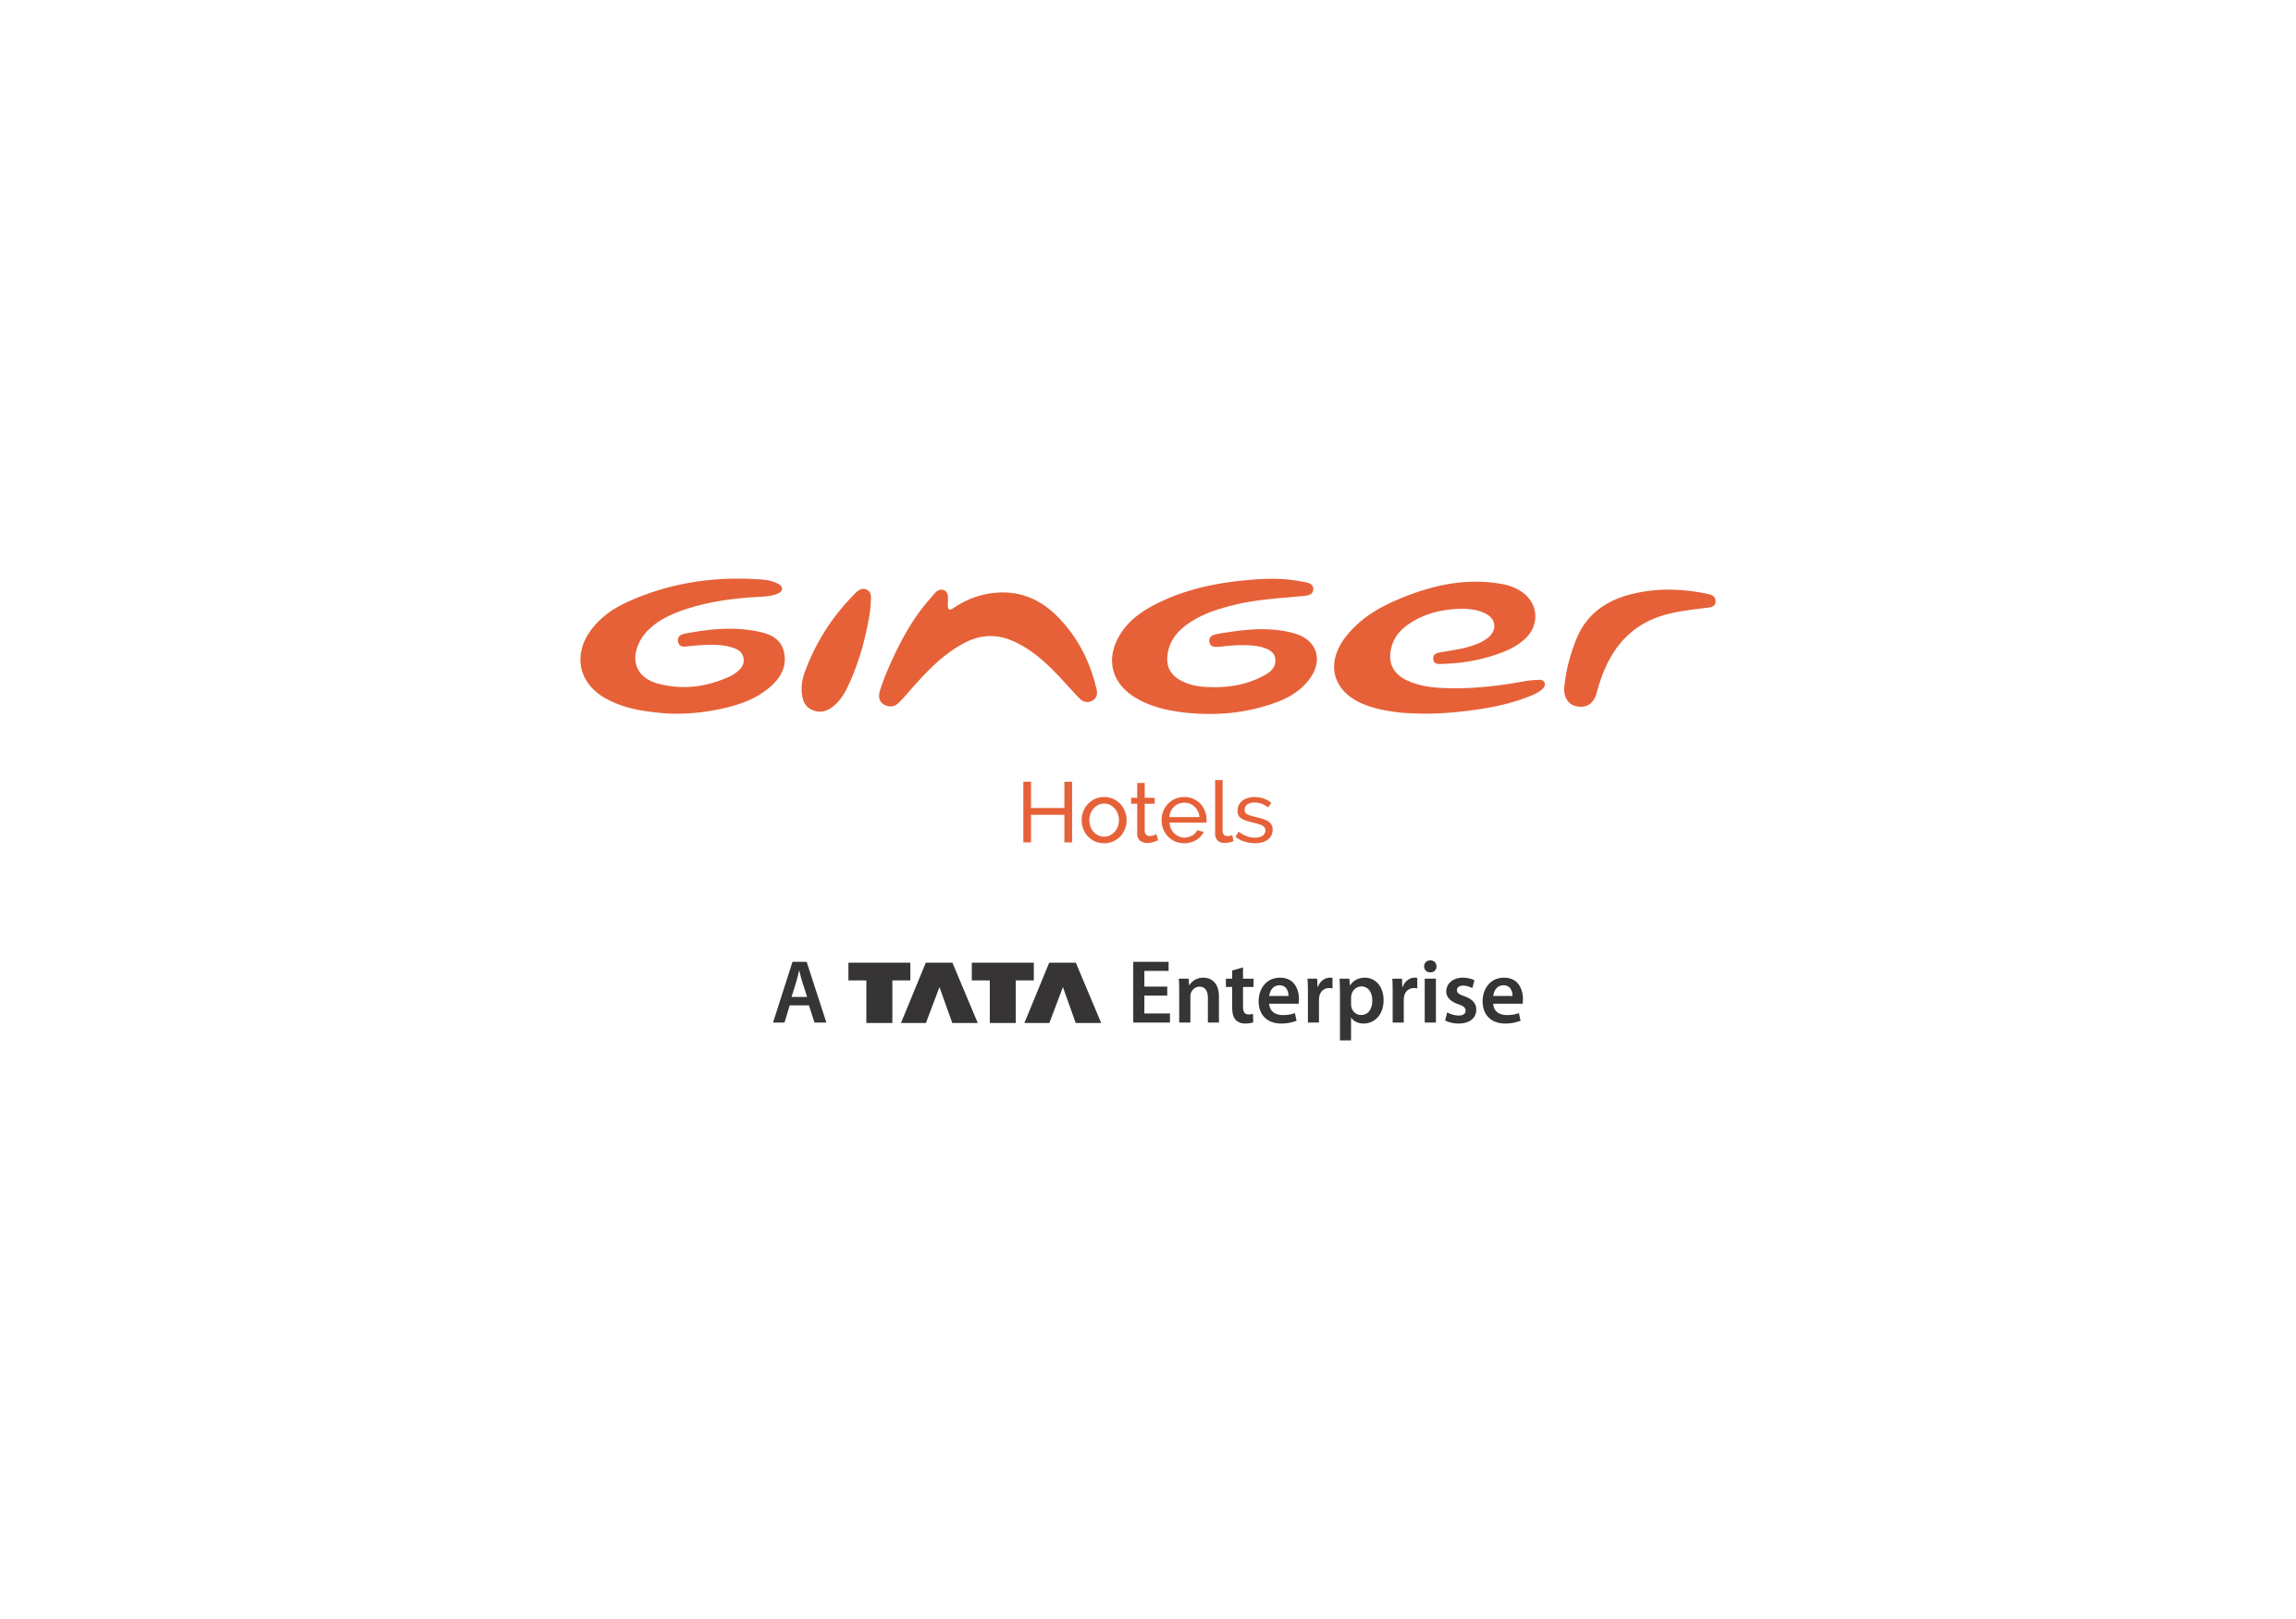 Ginger Hotels, the pioneer and the largest chain of budget hotels in India.